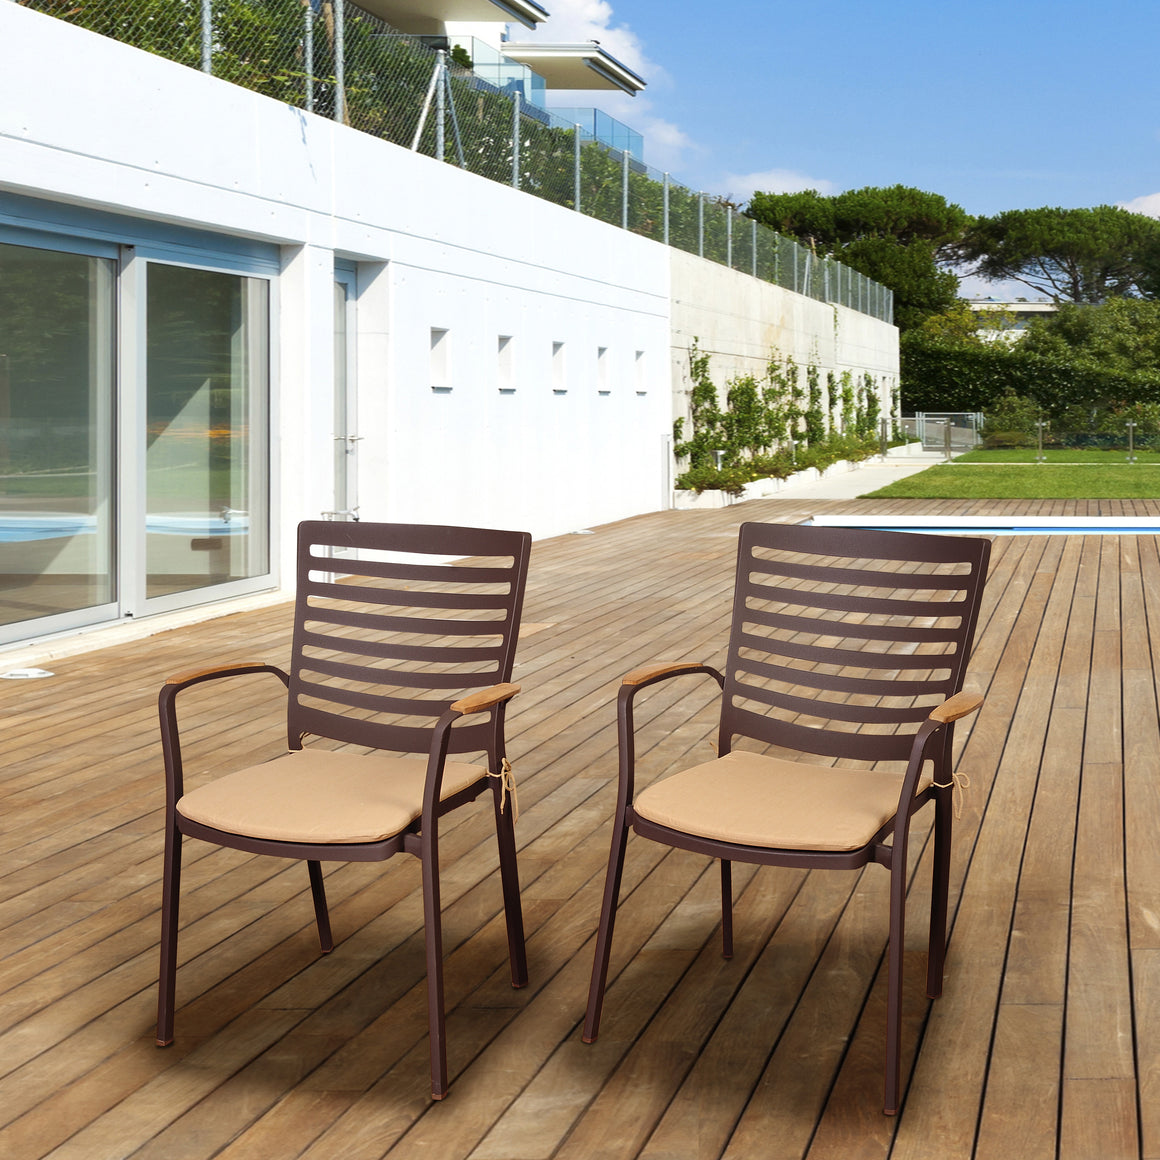 Amazonia Clemente 4 Piece Teak/Cast Aluminum Arm Chair Set with Tan Cushions , International Home Miami- grayburd